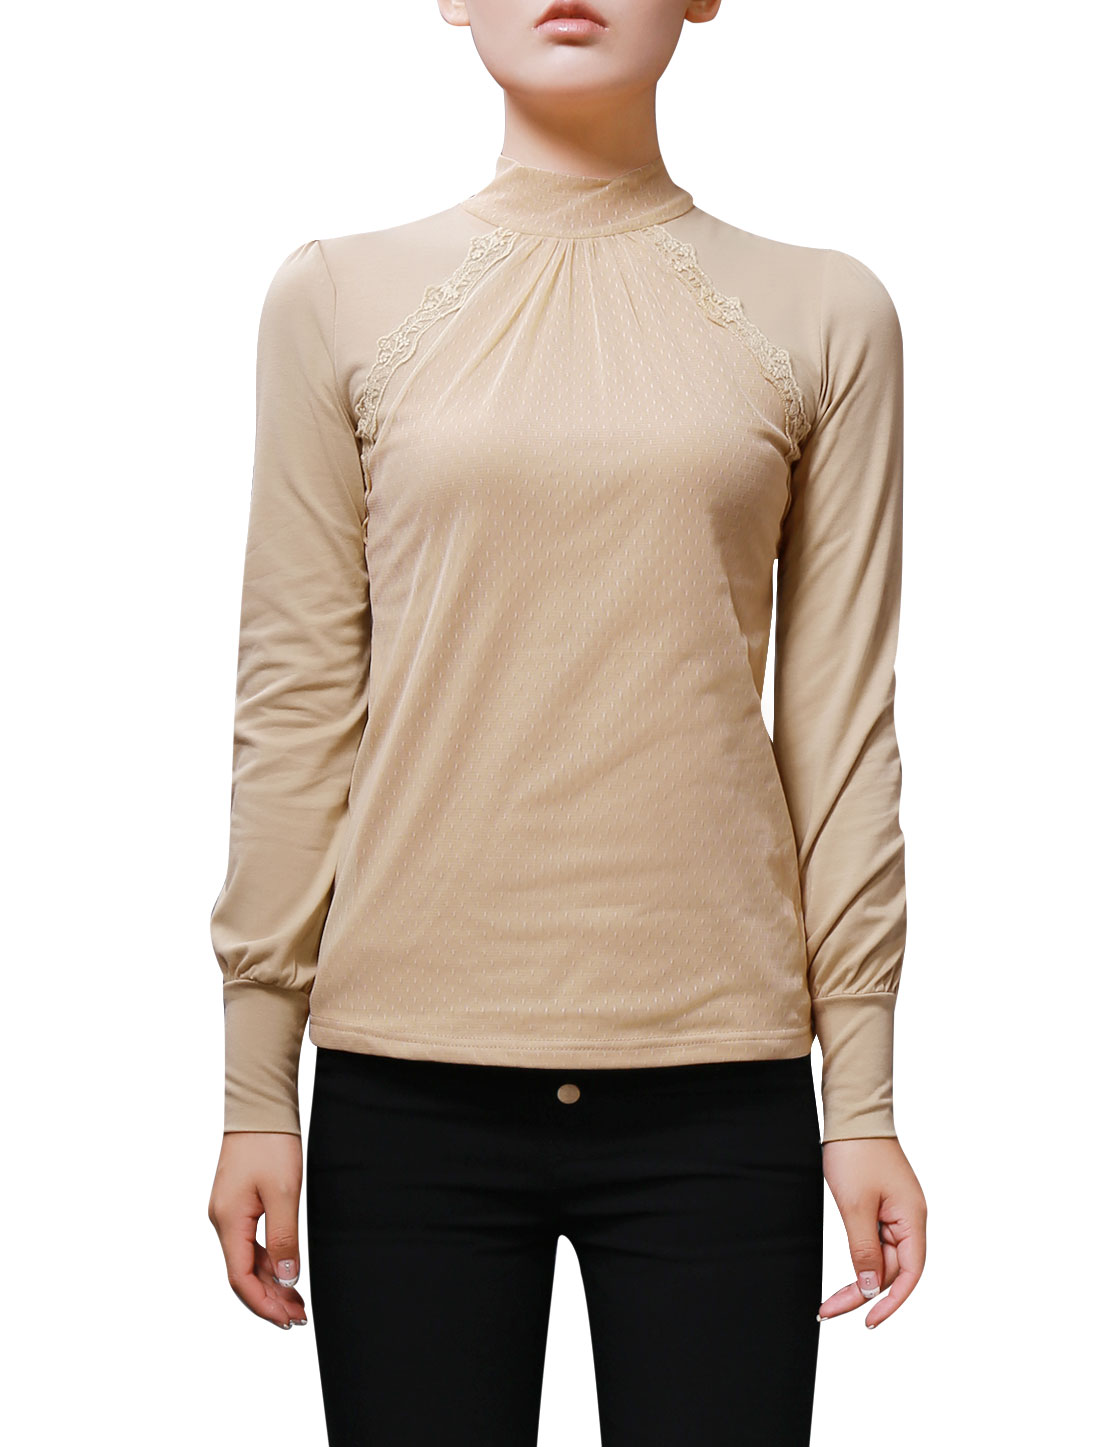 Stylish Ladies Beige Mesh Splice Front Design Slim Fit Casual Tops XL